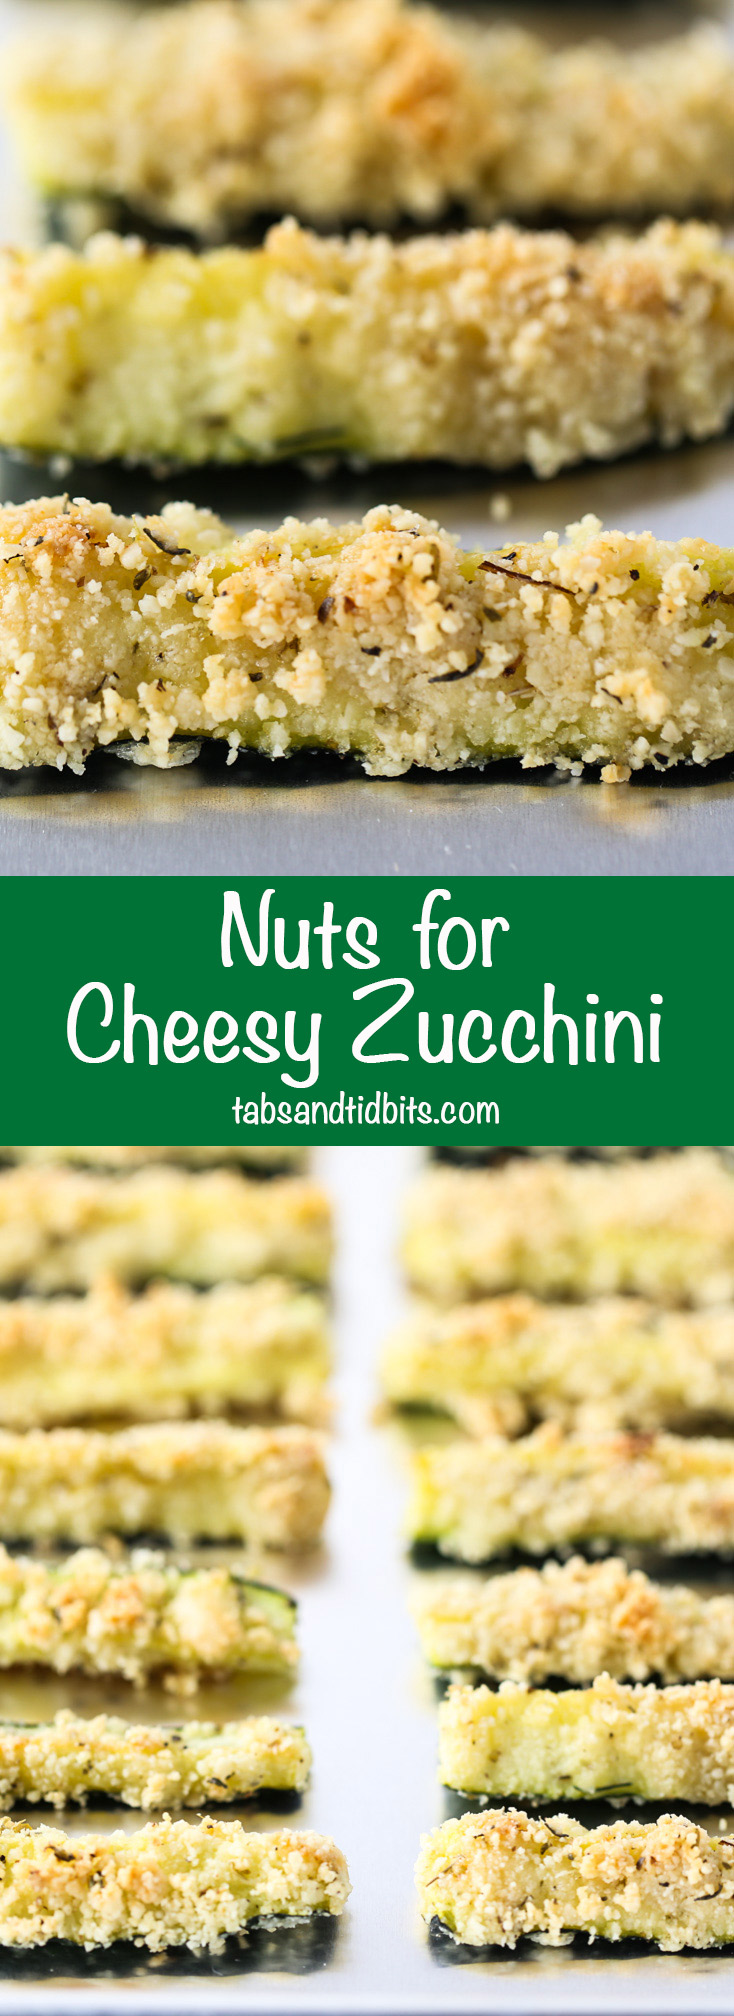 Nuts for Cheesy Zucchini -Zucchini coated in almond meal, pecorino romano cheese and seasonings baked into nutty and cheesy deliciousness!